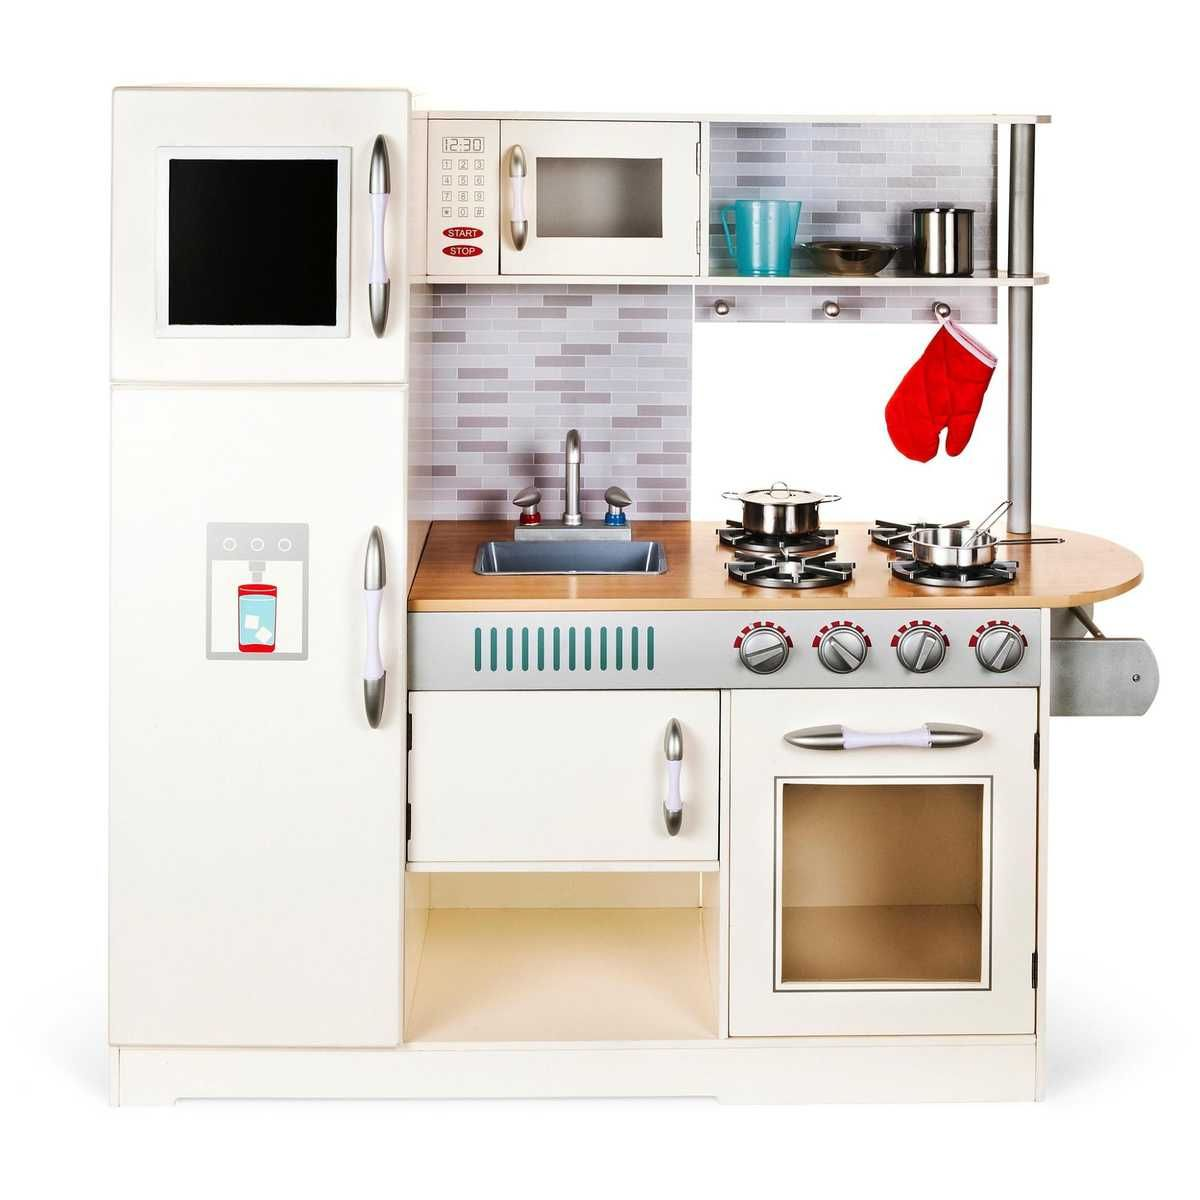 Uncategorized Big W Kitchen Appliances the tinkers my little kitchen is perfect for any aspiring chef or just